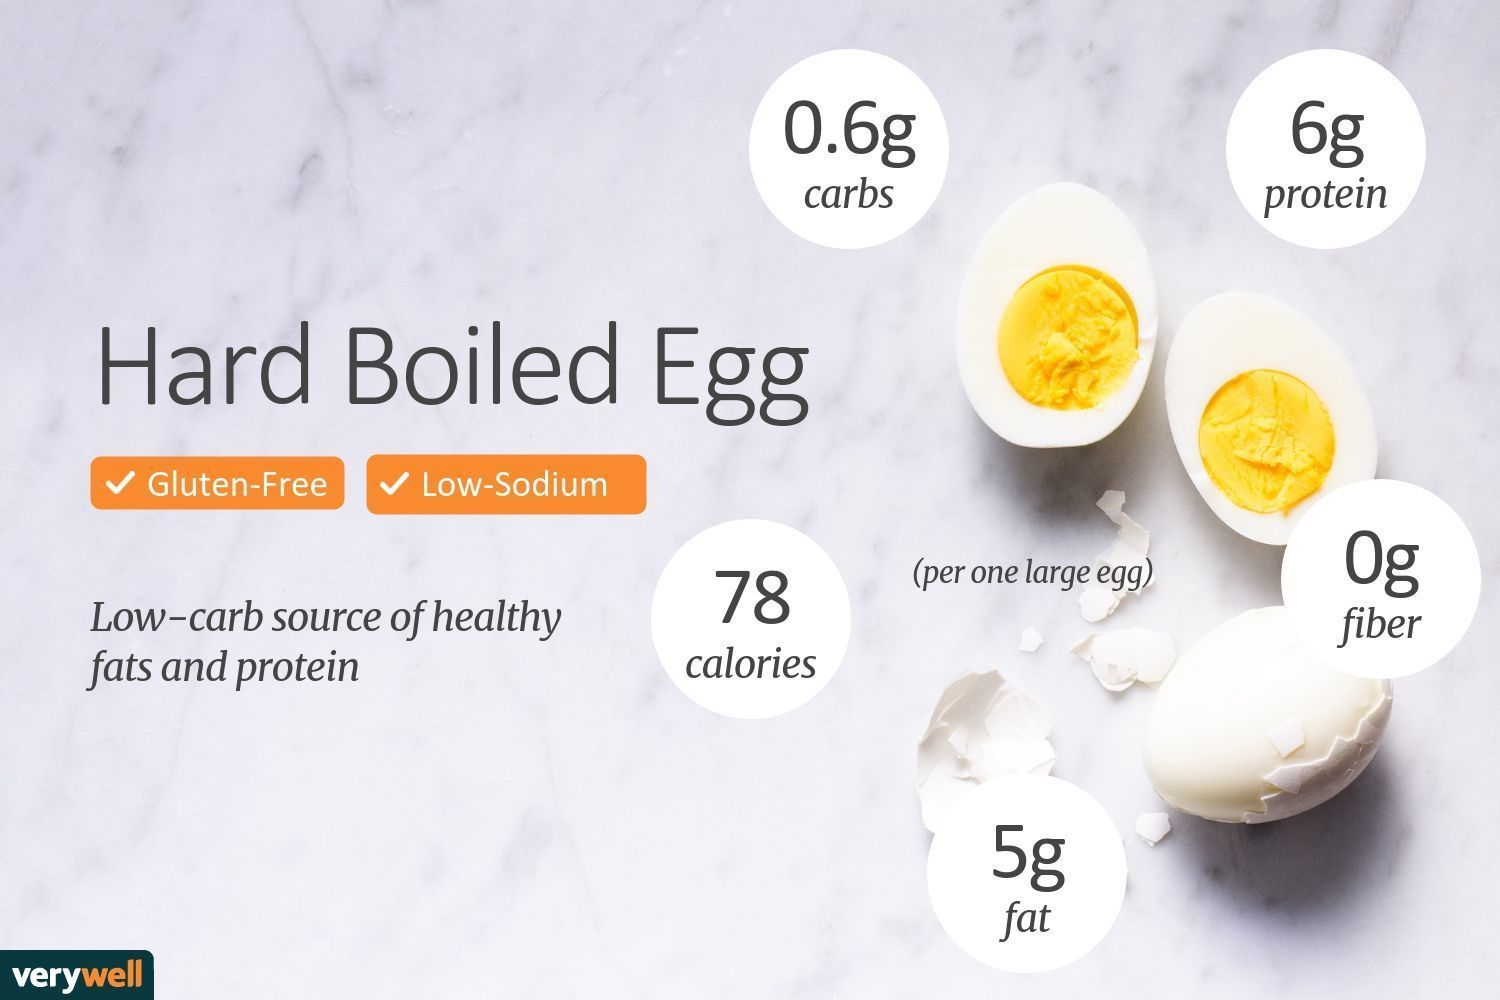 Egg Whites Nutrition: High in Protein, Low in Everything Else